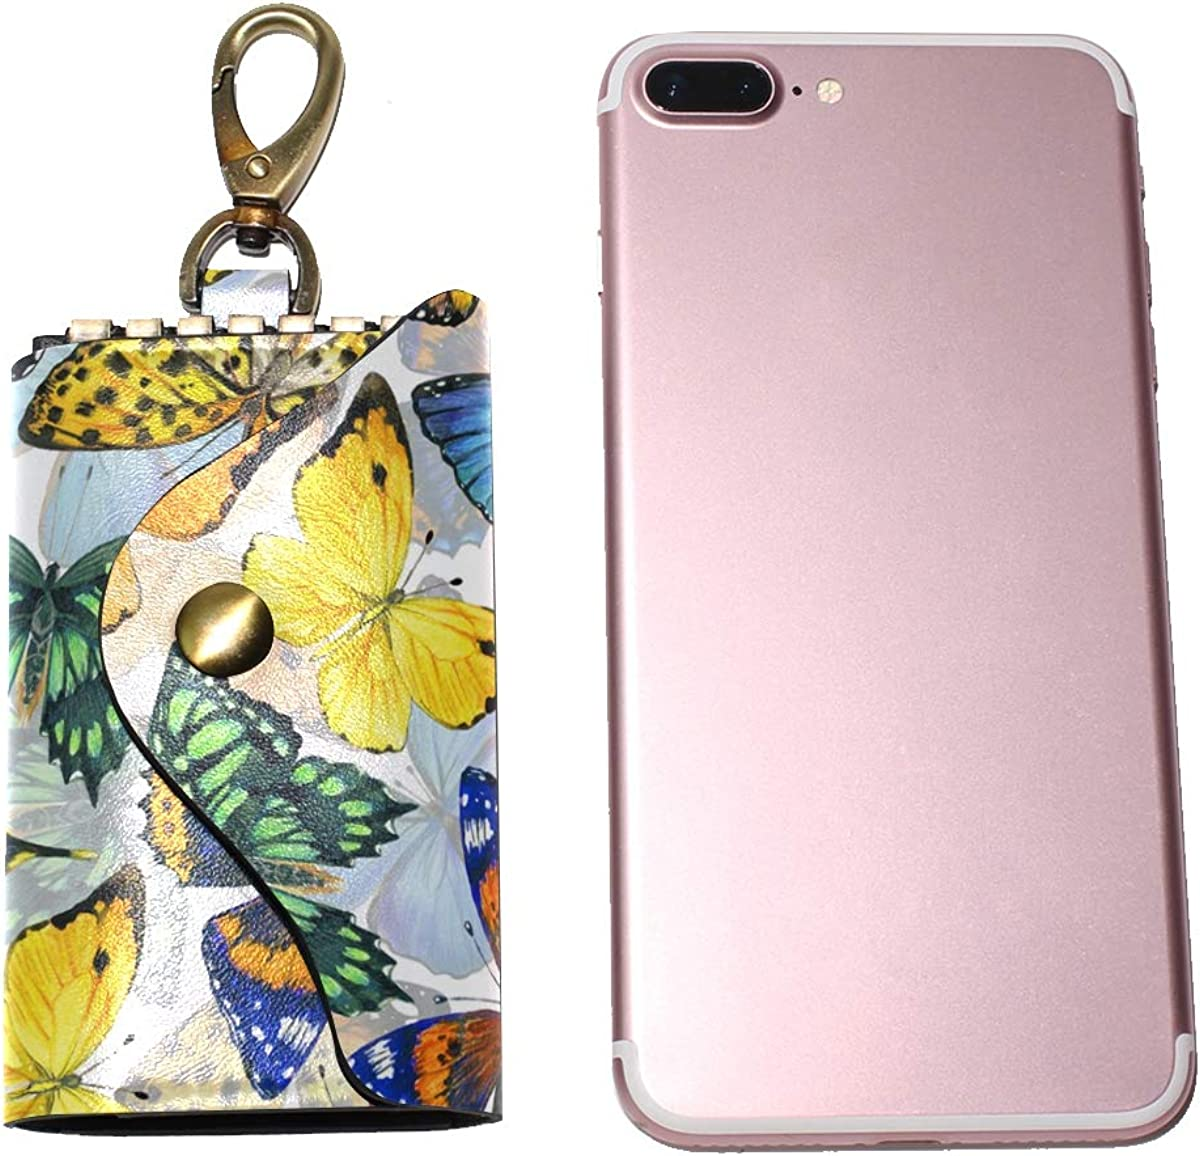 KEAKIA Colorful Butterfly Pattern Leather Key Case Wallets Tri-fold Key Holder Keychains with 6 Hooks 2 Slot Snap Closure for Men Women